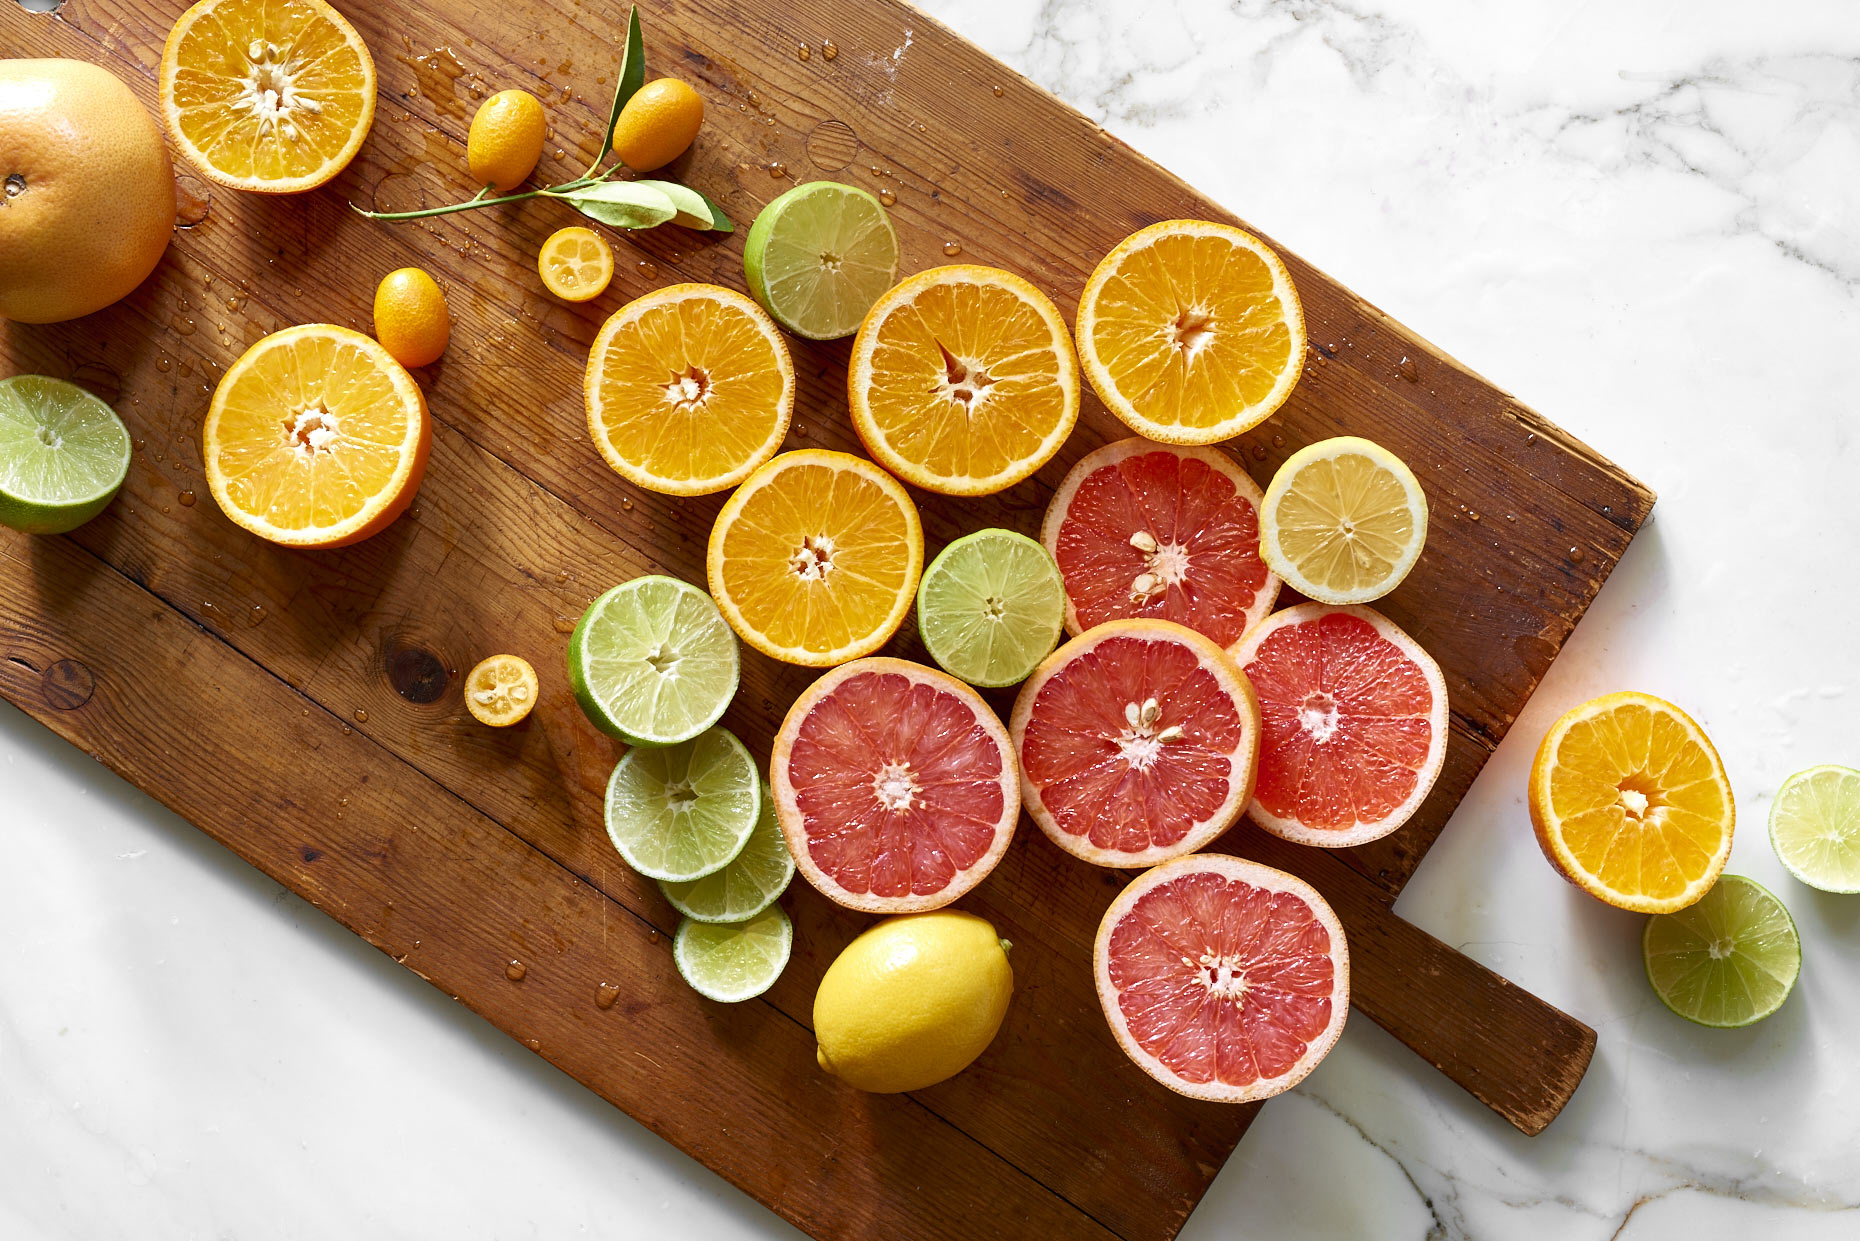 Oranges-lemons-and-limes-citrus-on-wood-cutting-board